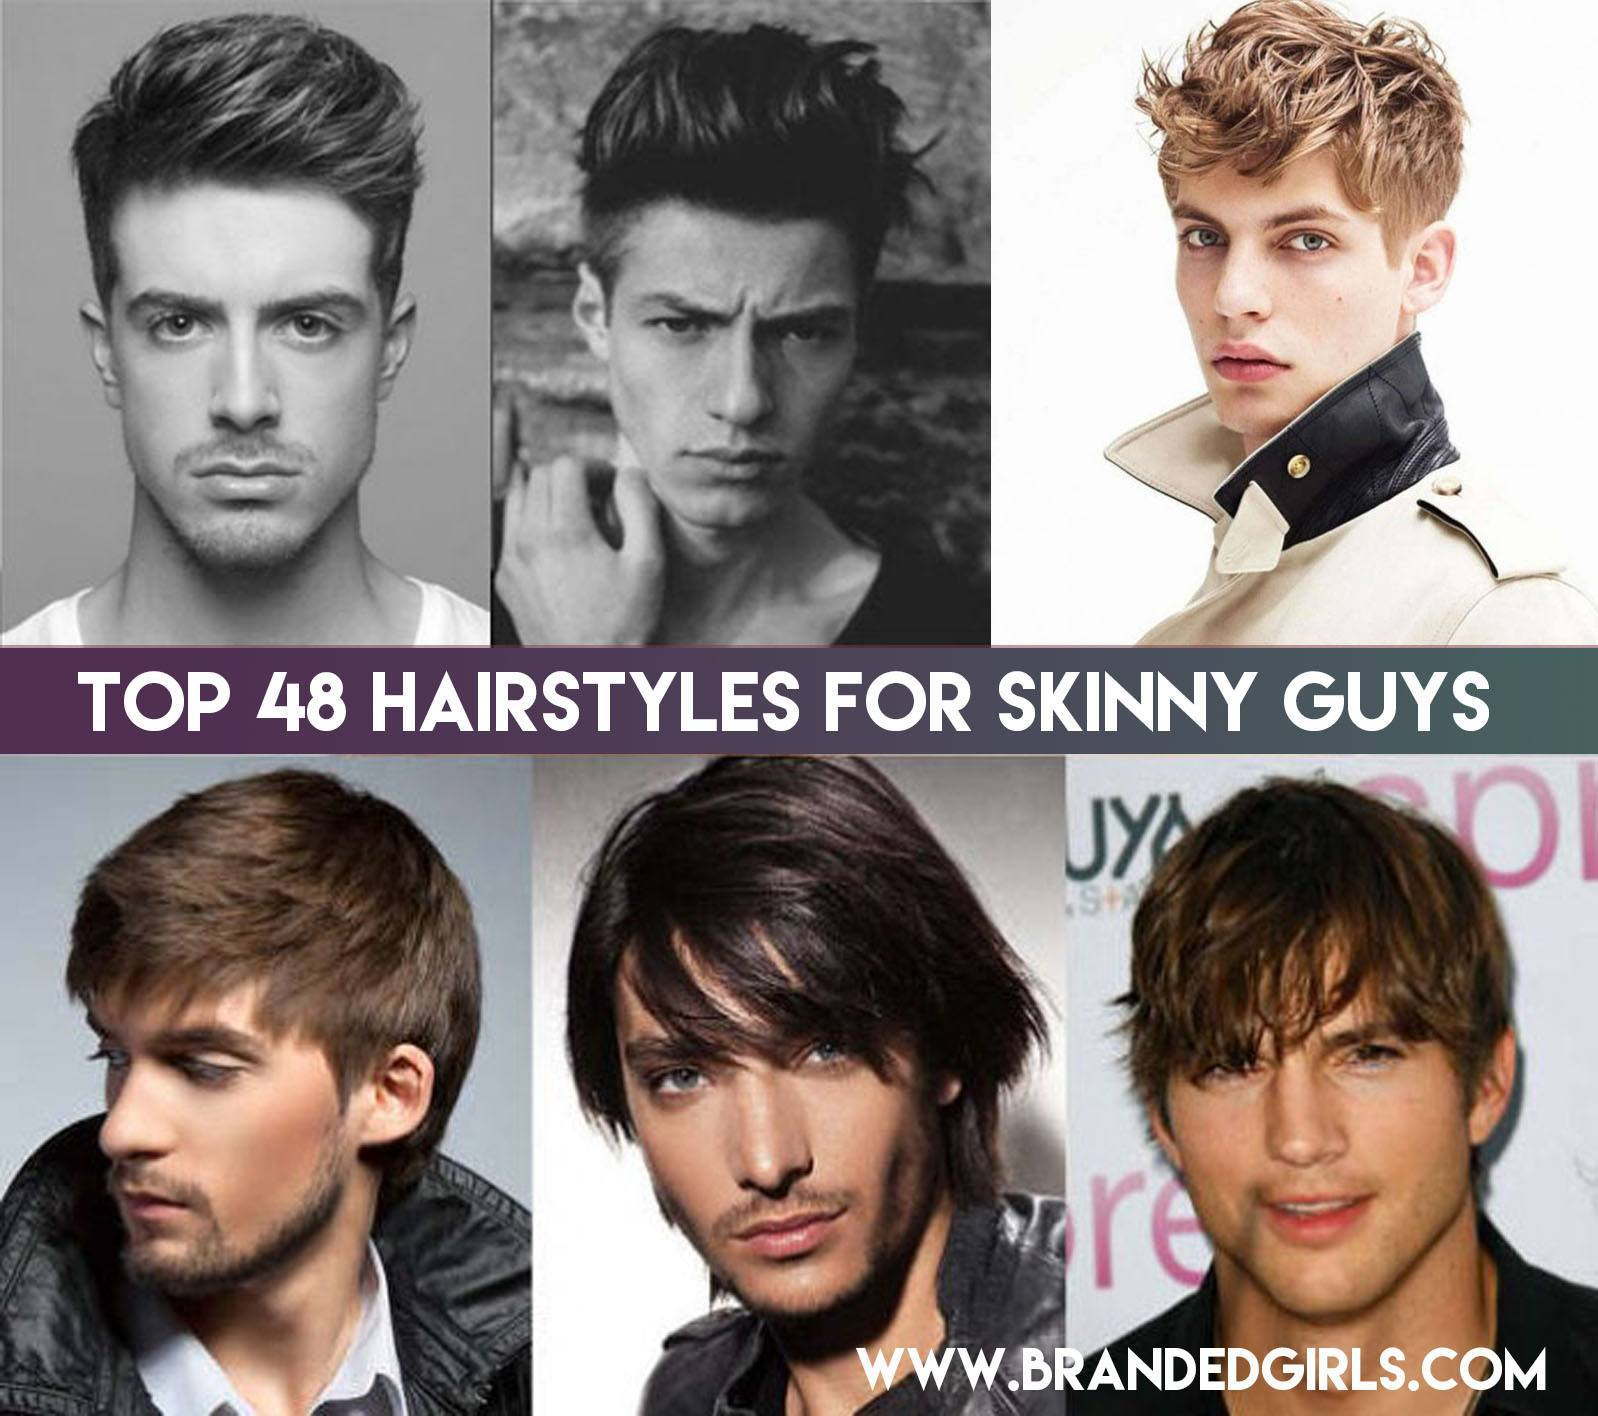 Top Best Hairstyles for Skinny Guys